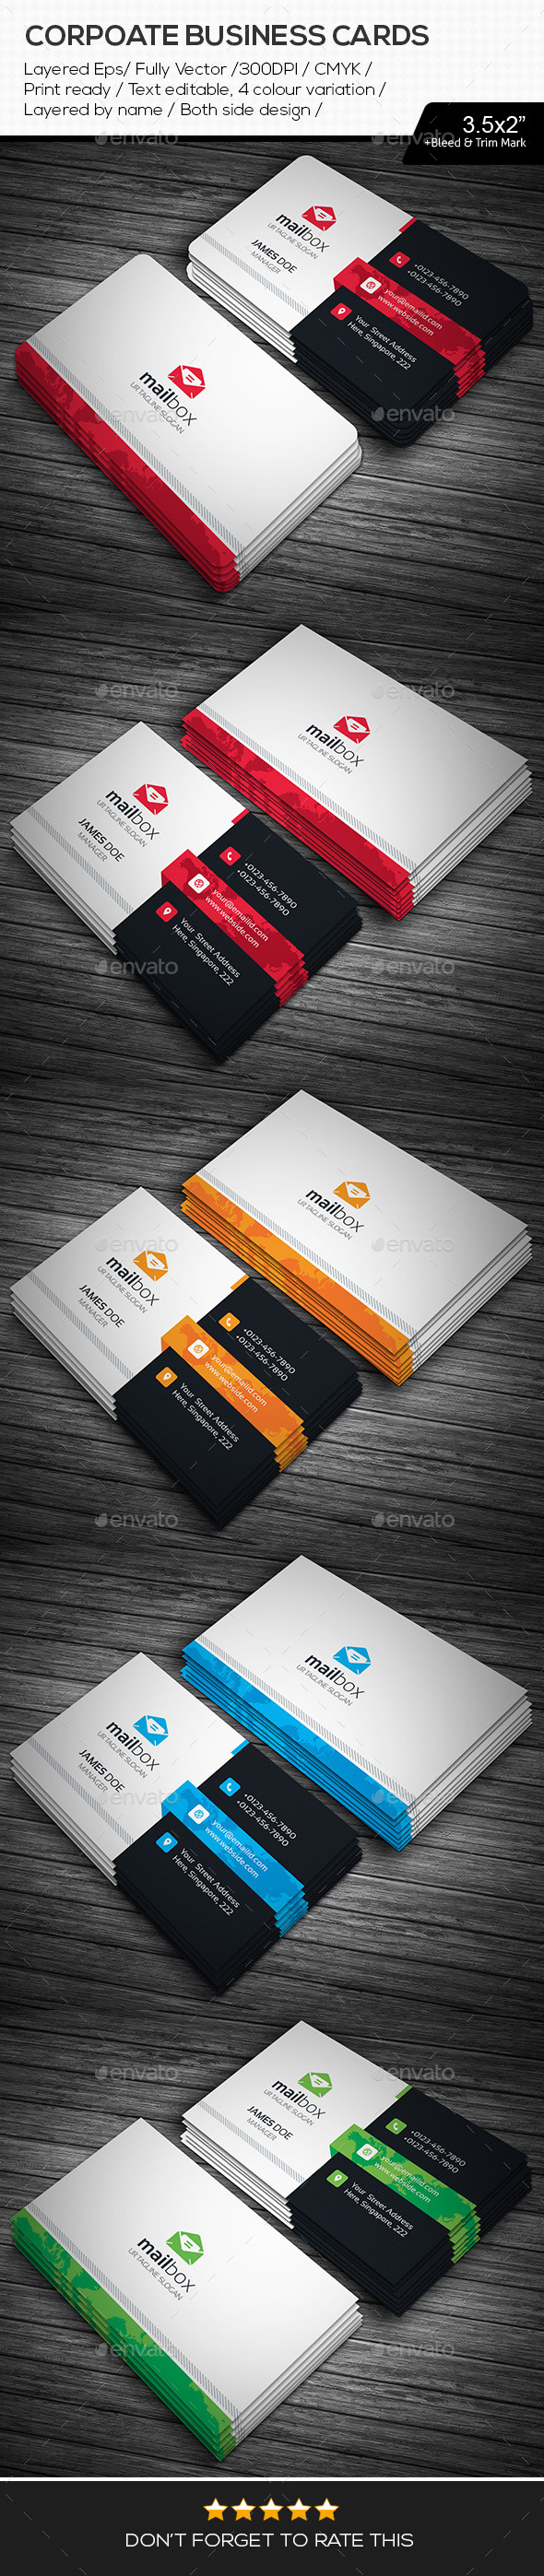 GraphicRiver Mail Box Corporate Business Cards 11224926